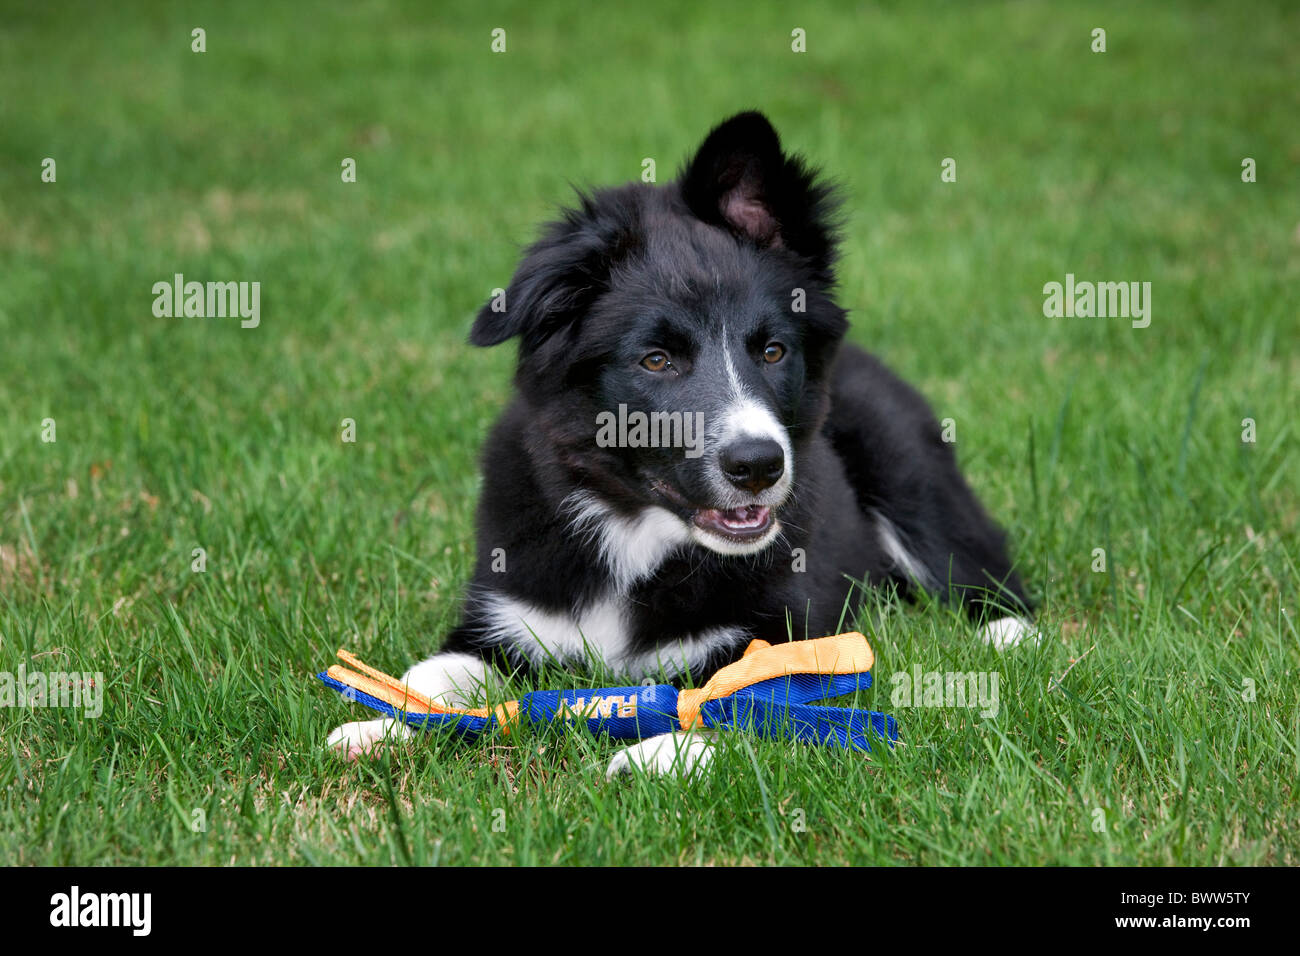 Border Collie (Canis lupus familiaris) with toy in garden - Stock Image